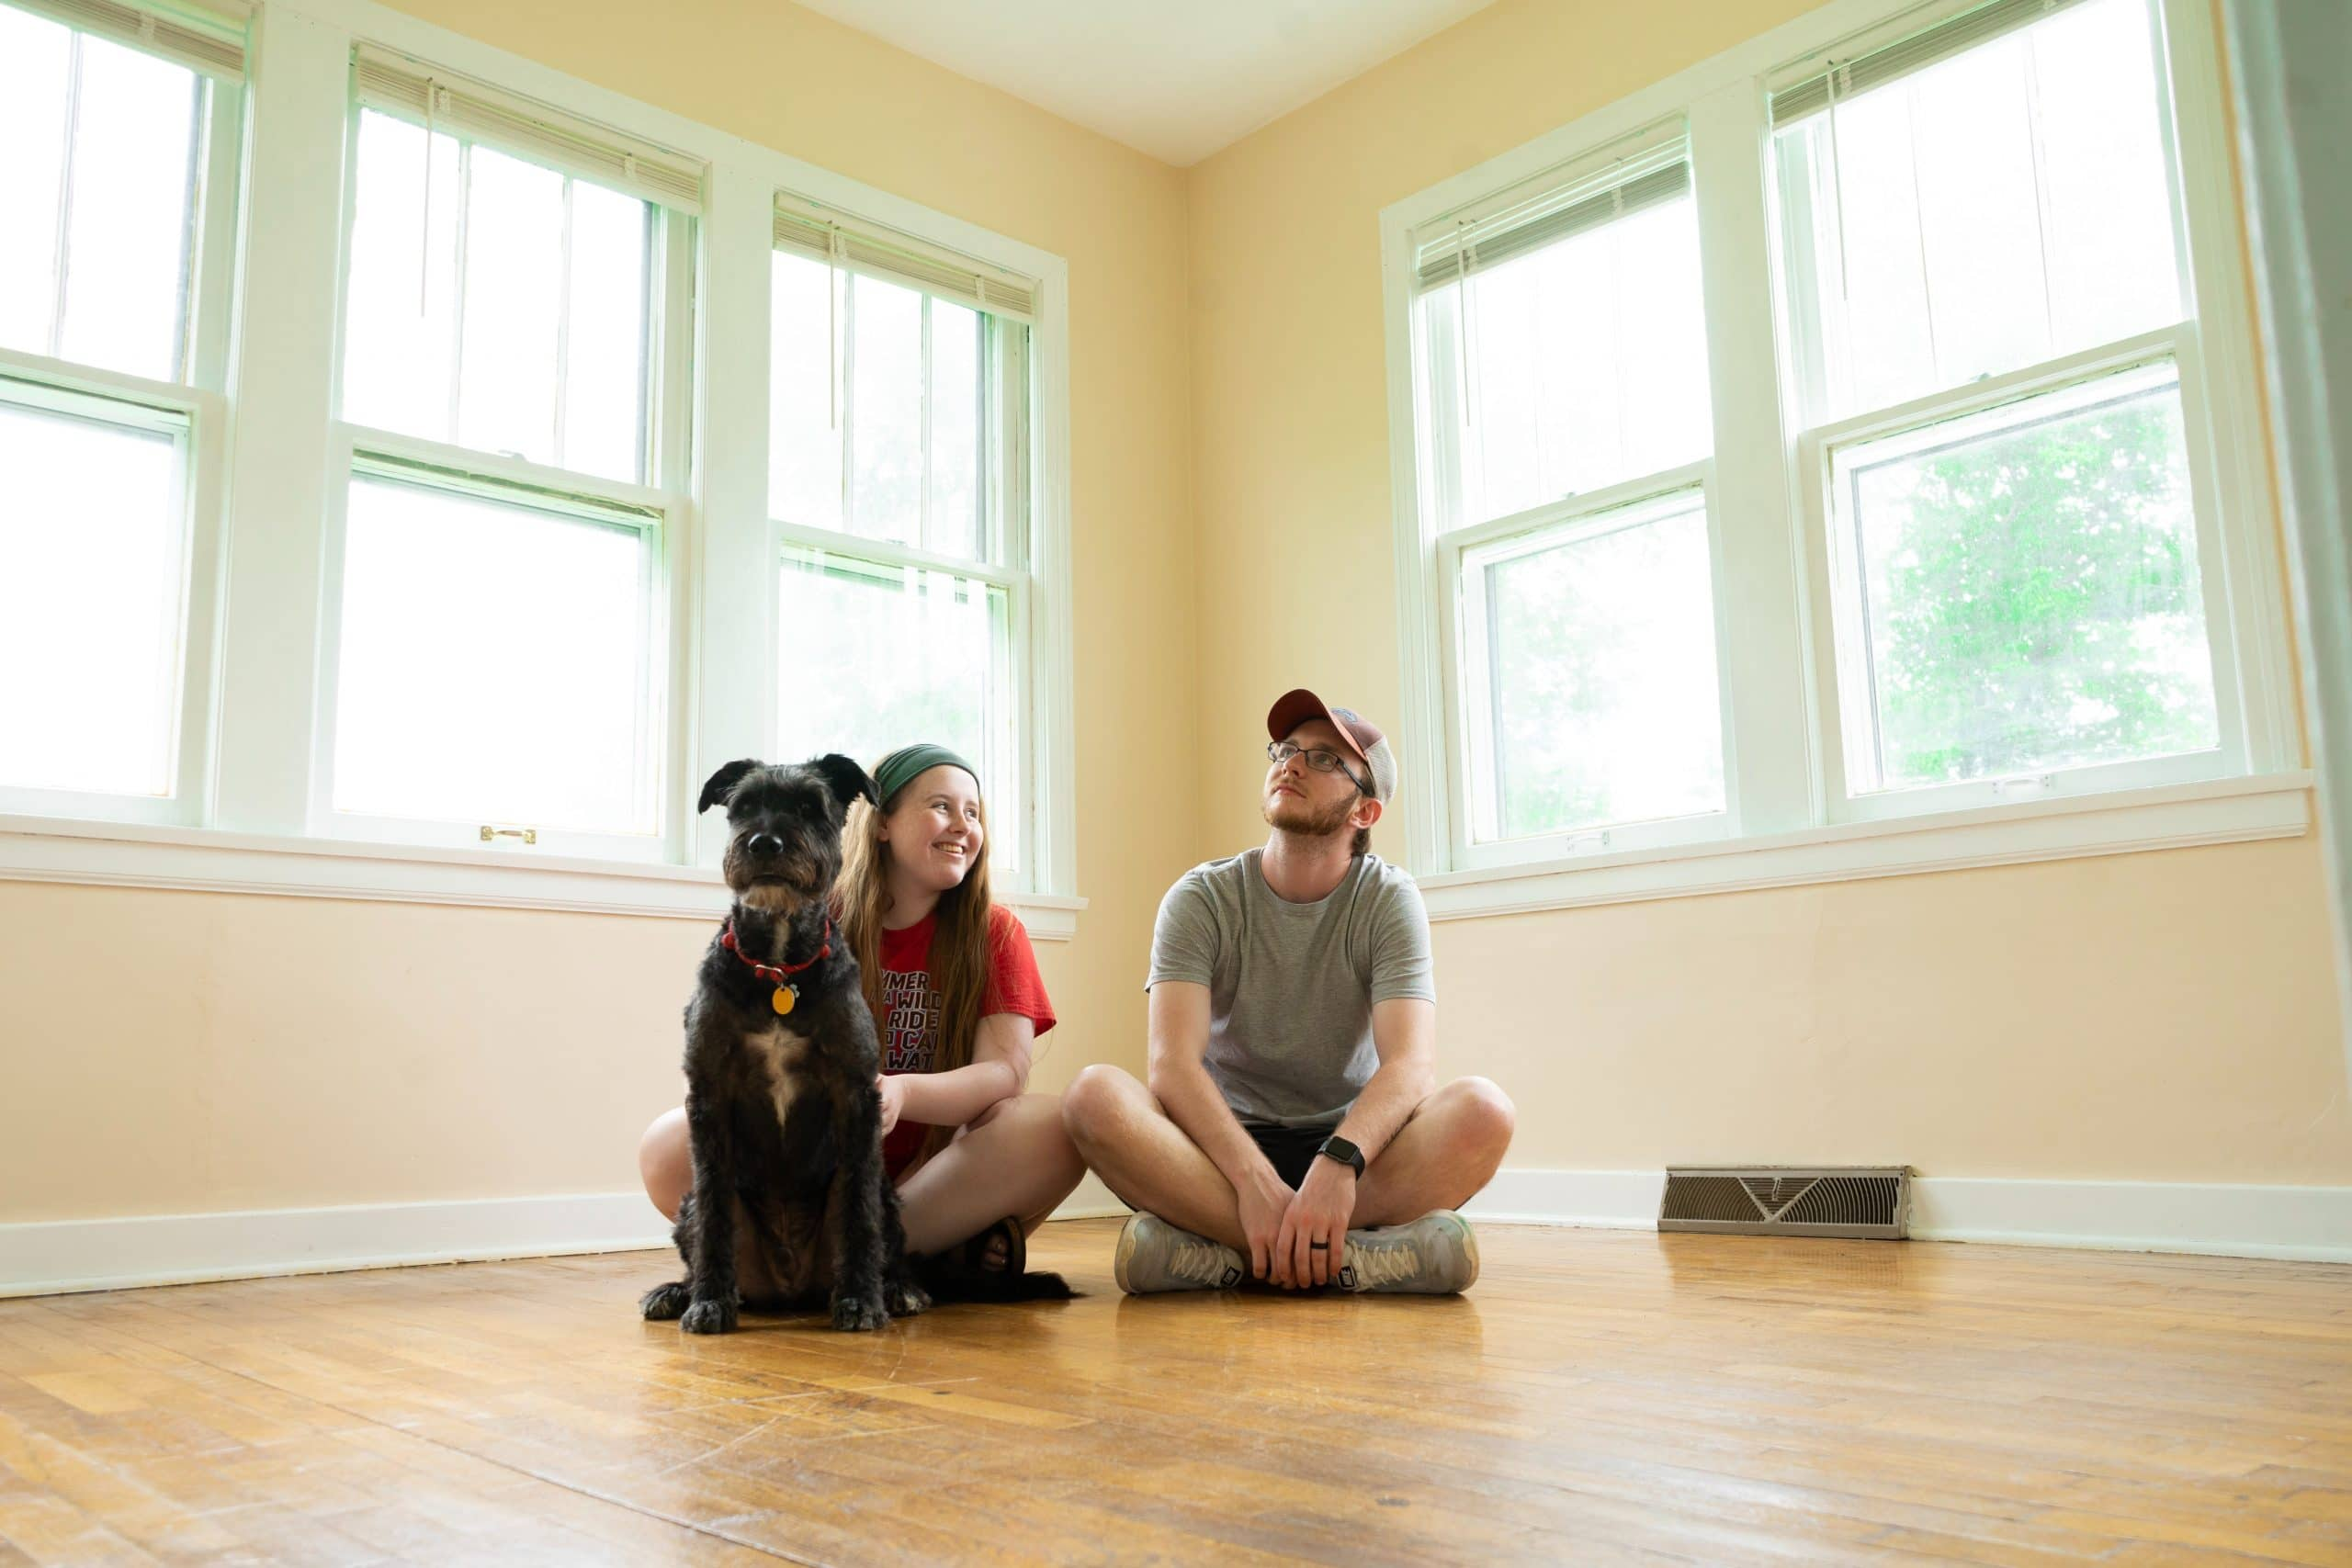 man and woman sitting in floor